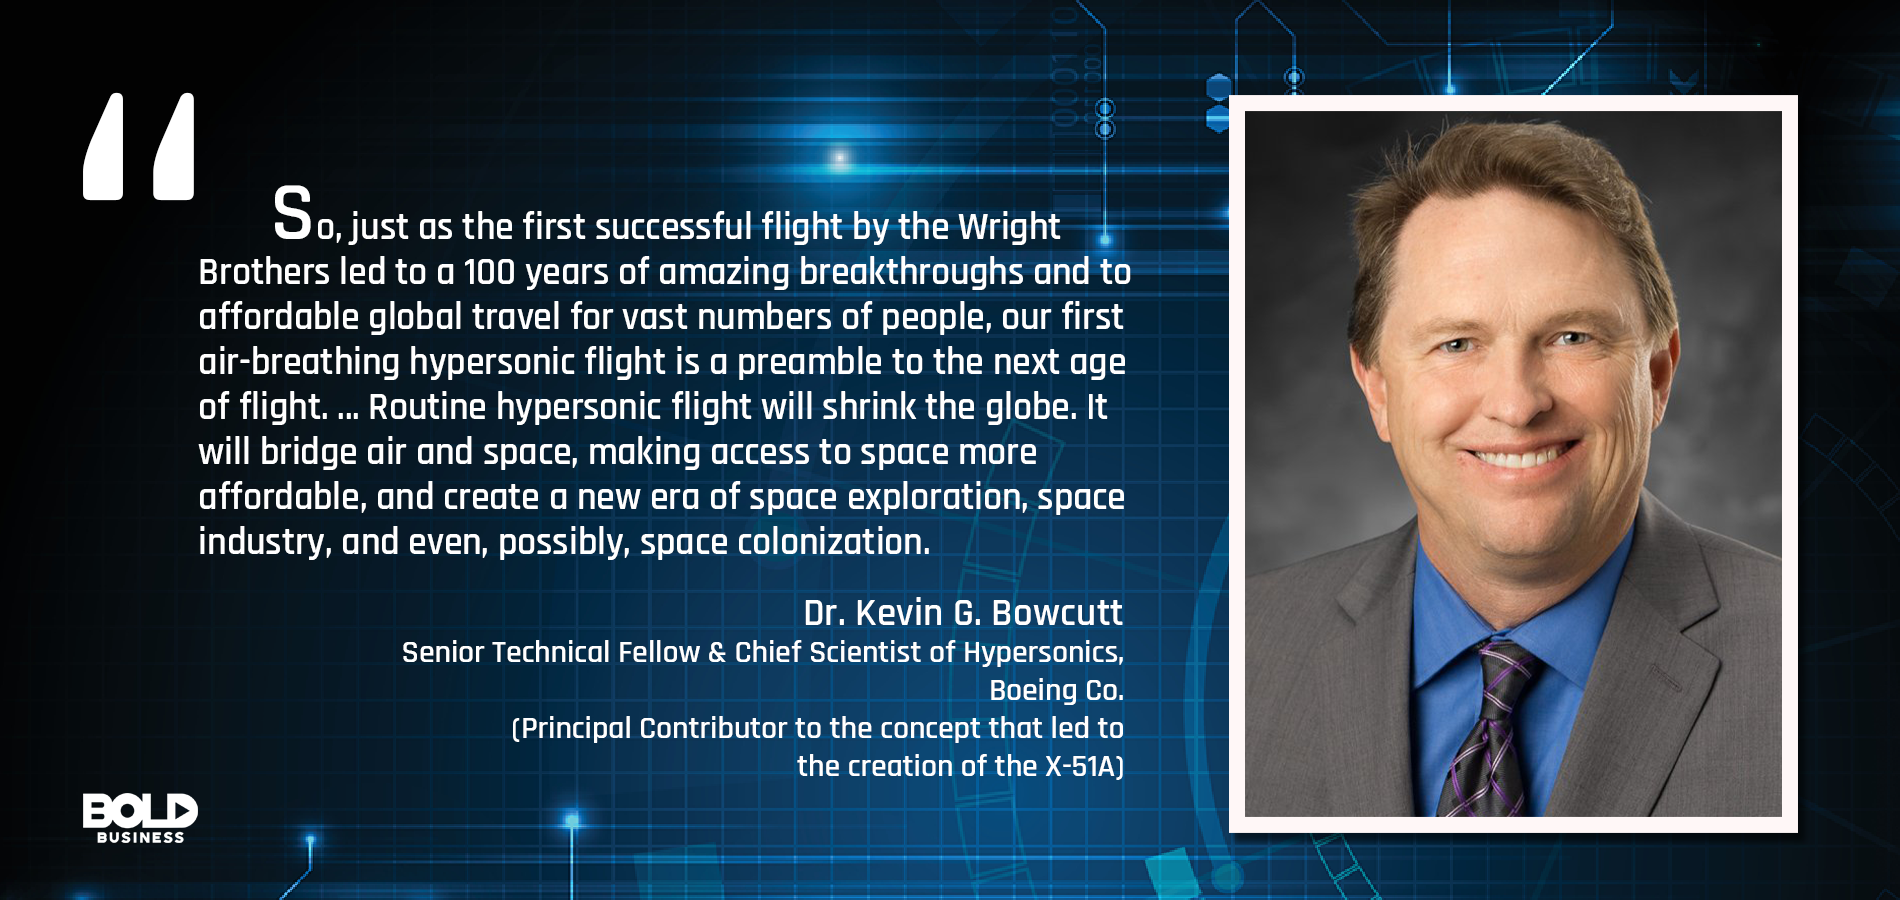 a photo quote of Kevin G. Bowcutt about hypersonic flights in relation to the main topic of hypersonic transport